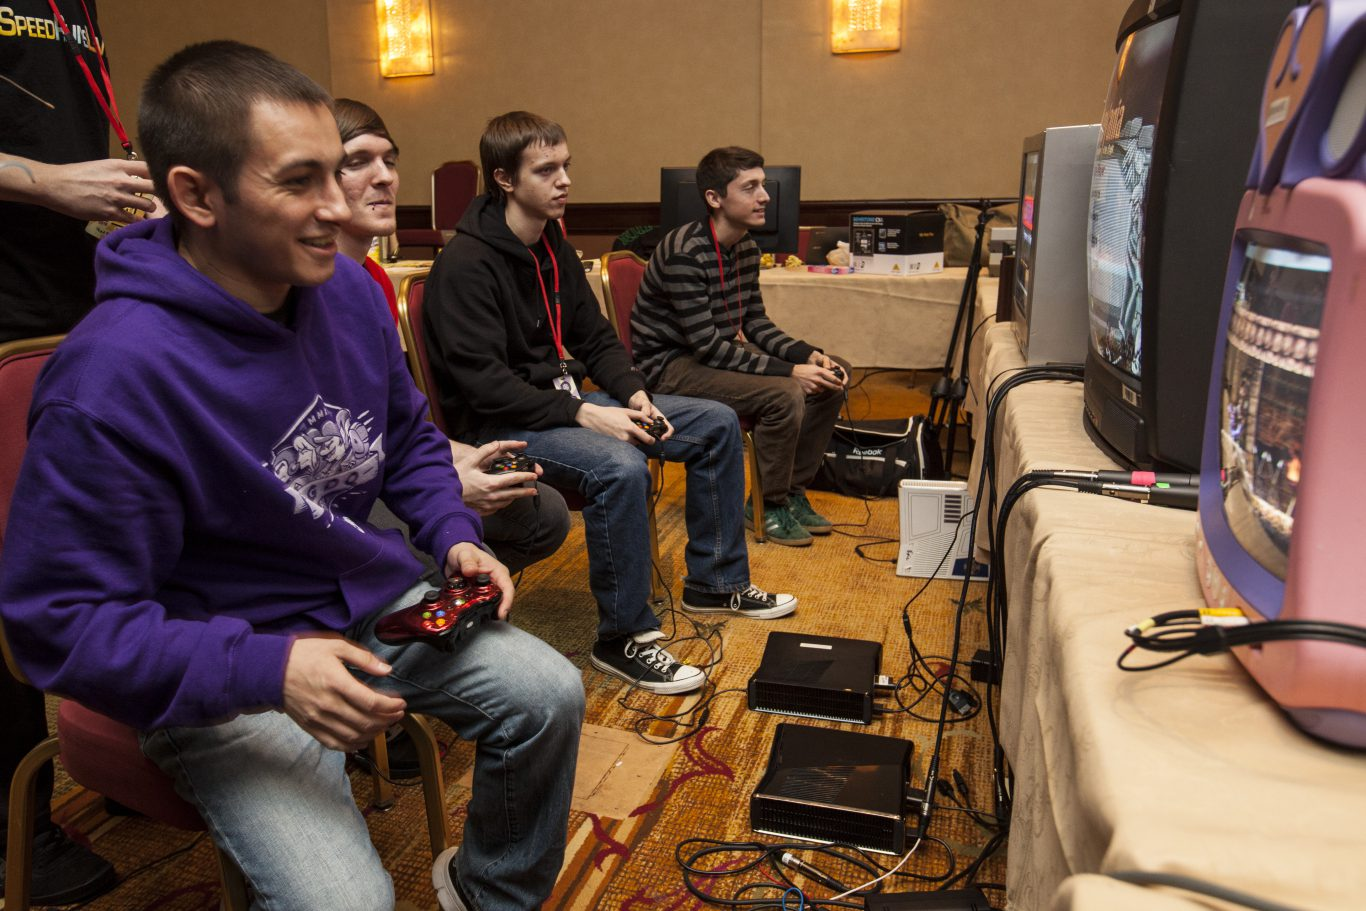 Awesome Games Done Quick video game marathon for charity this weekend